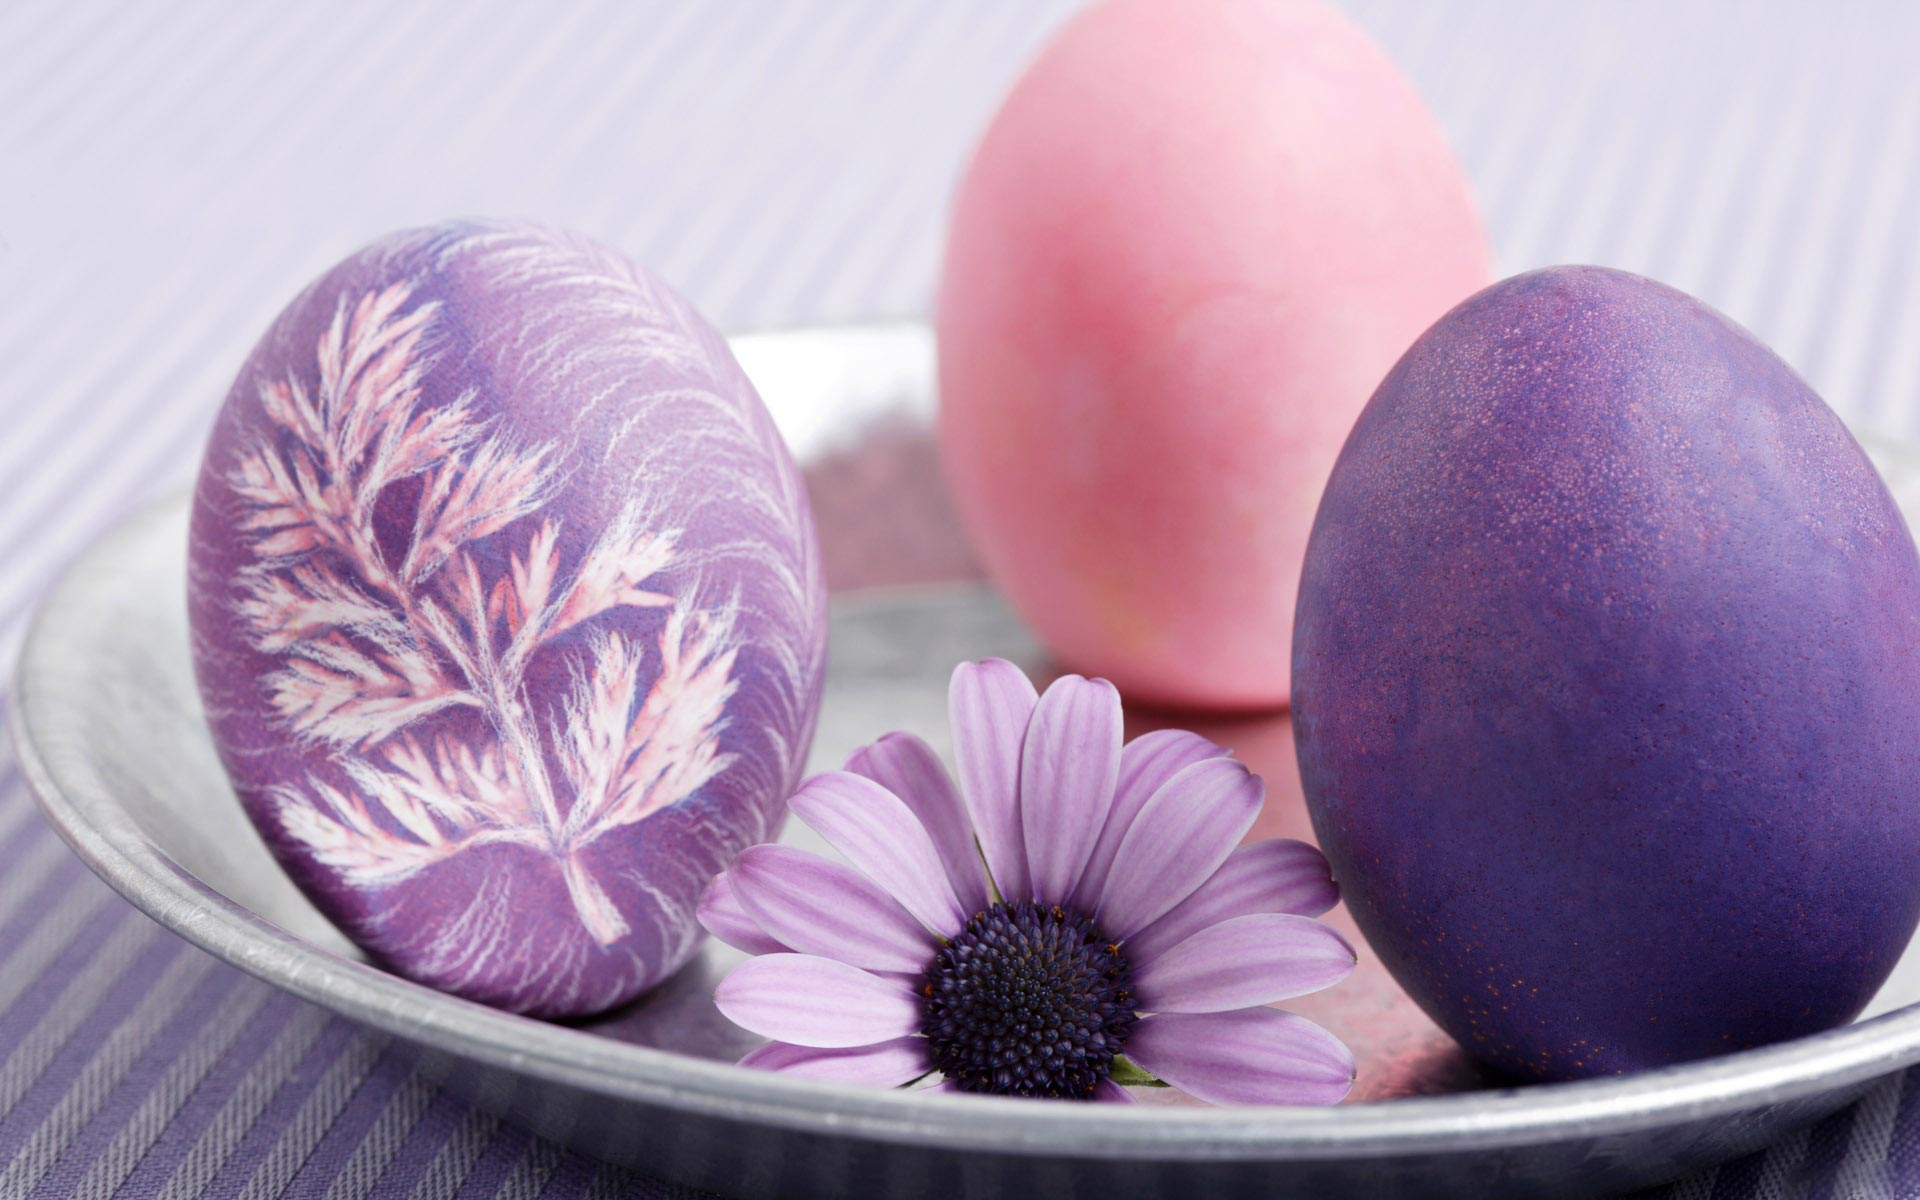 Tips to enjoy weight loss this Easter